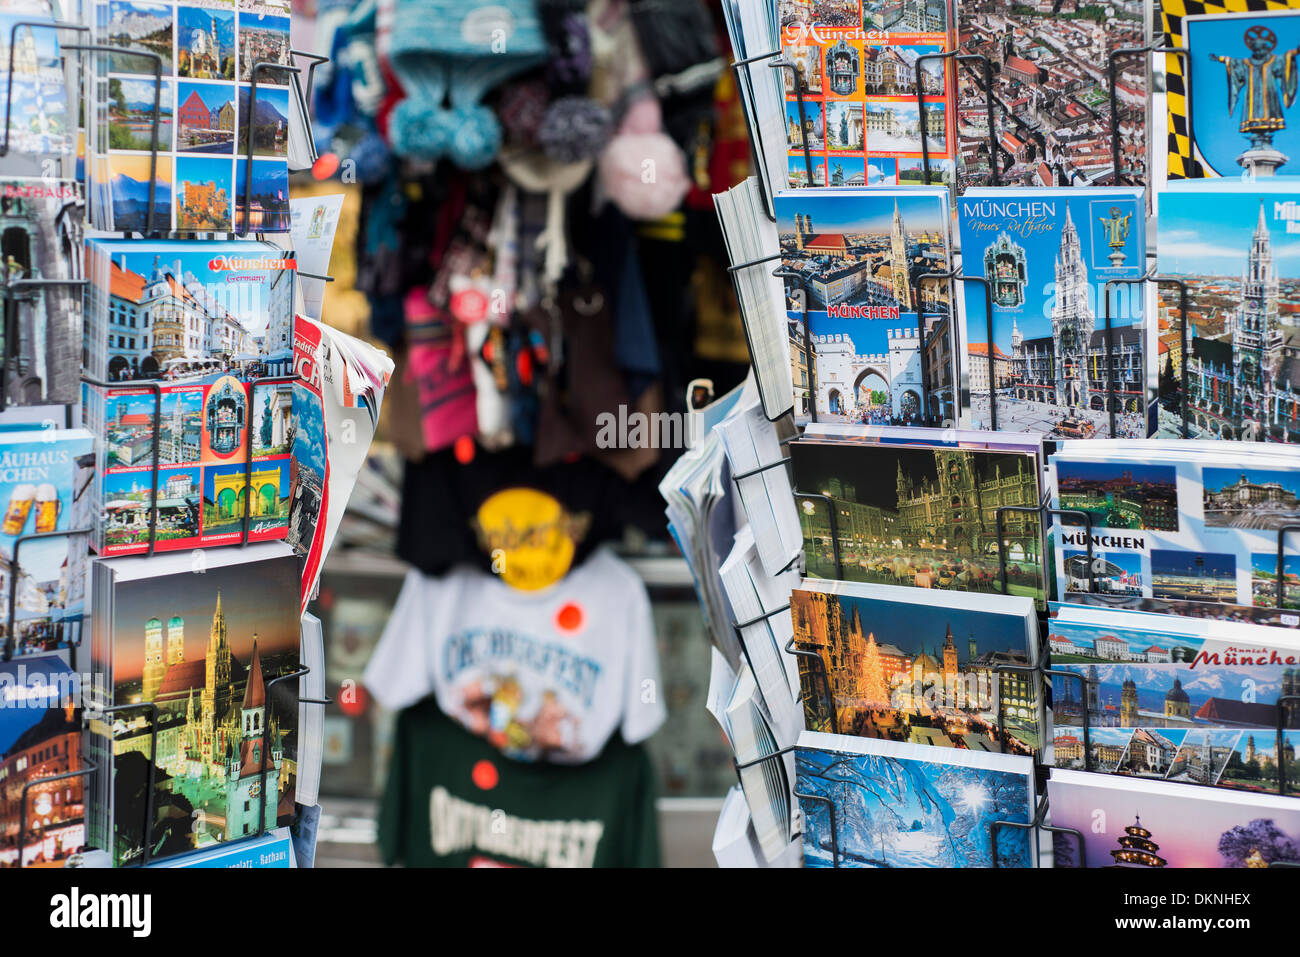 Postcards and souvenirs outside a shop in Munich, Germany - Stock Image